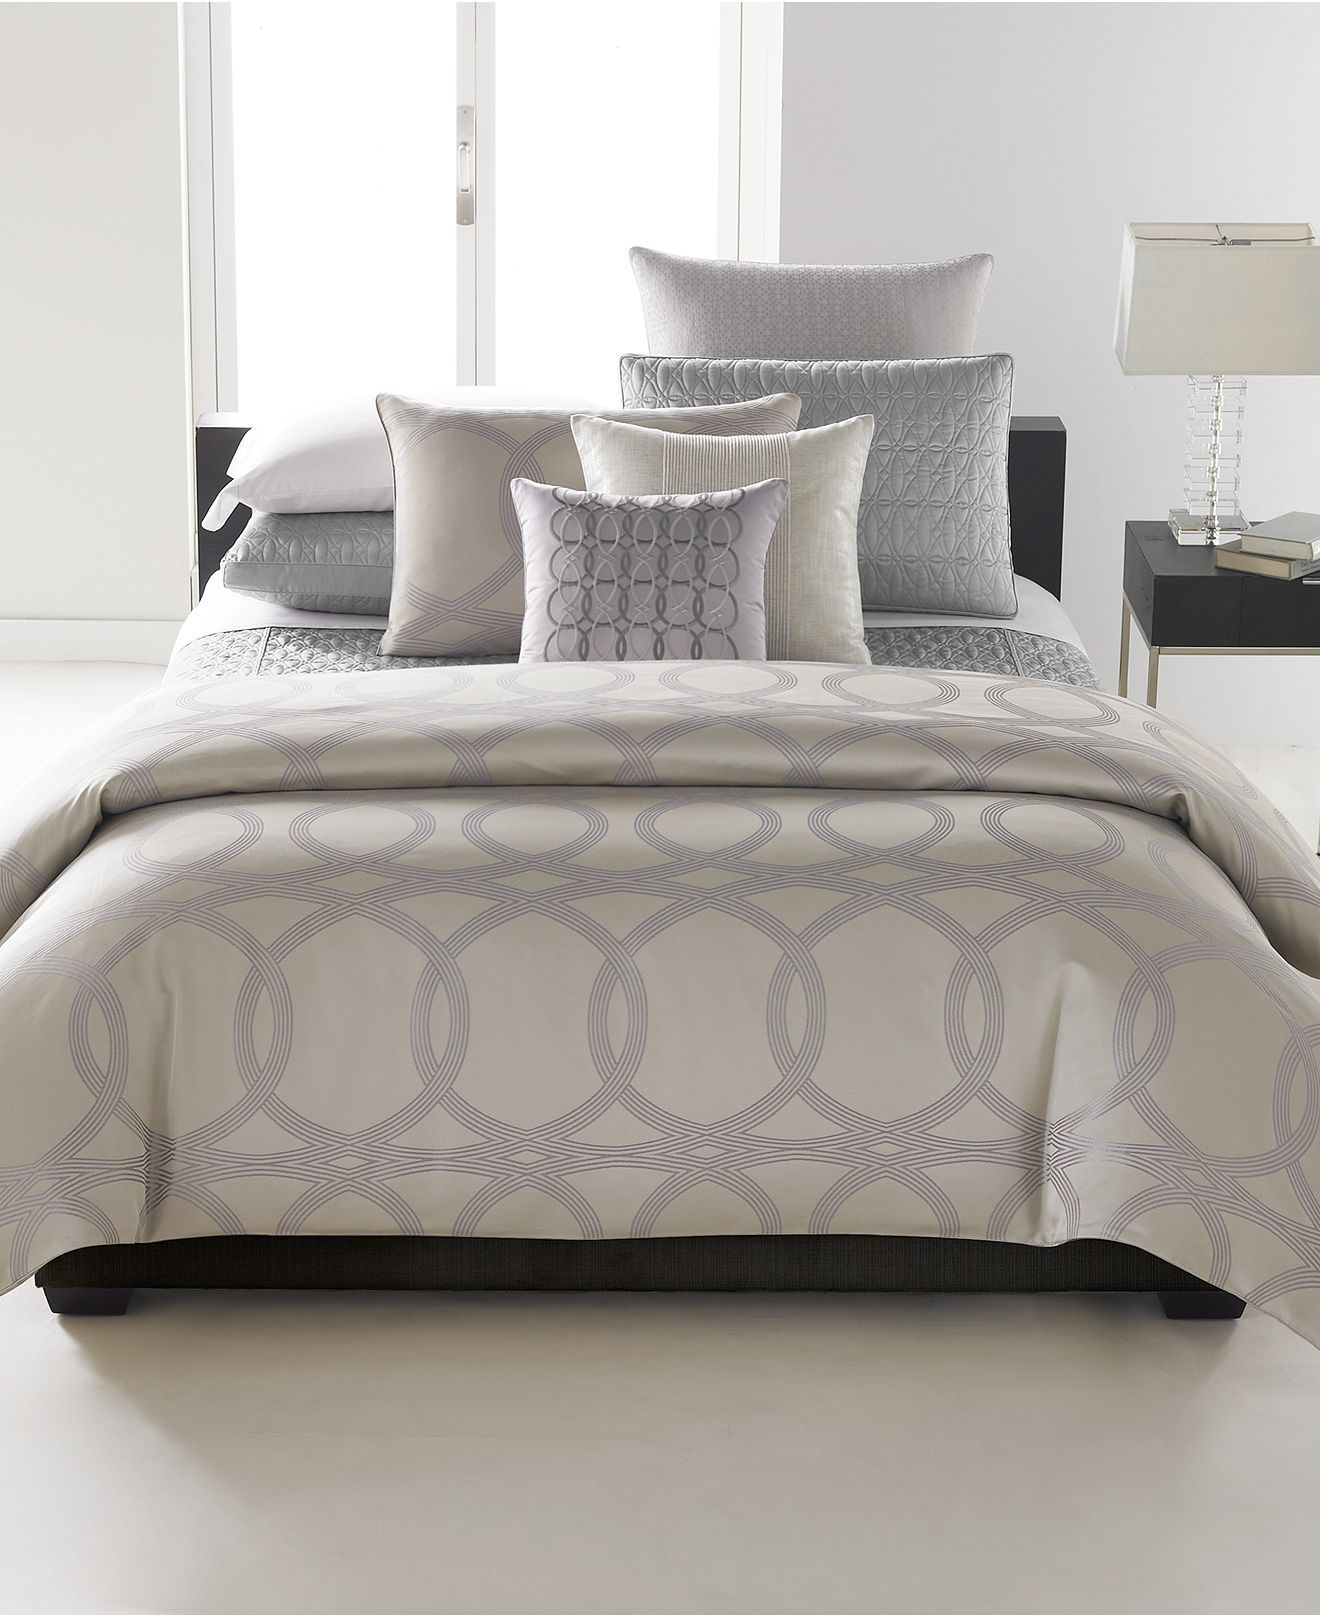 Hotel Collection Bedding, Calligraphy Collection   Bedding Collections   Bed  U0026 Bath   Macyu0027s